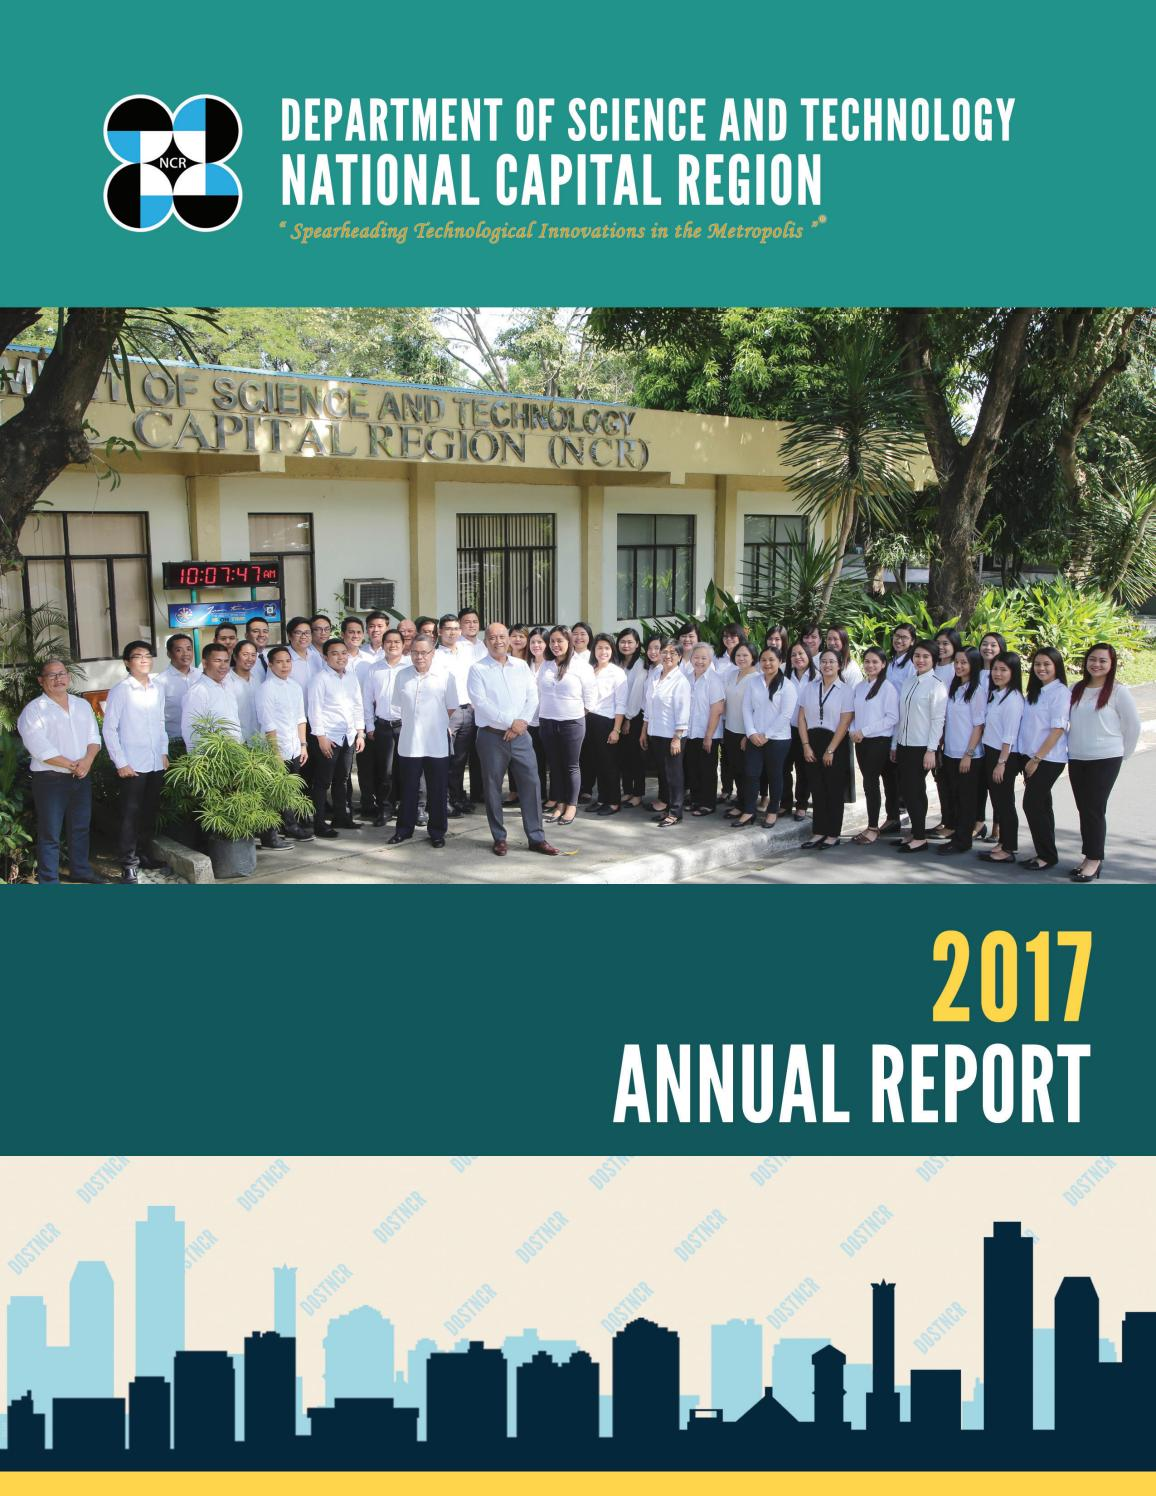 DOST-NCR Annual Report 2017 by dostncr mis - issuu